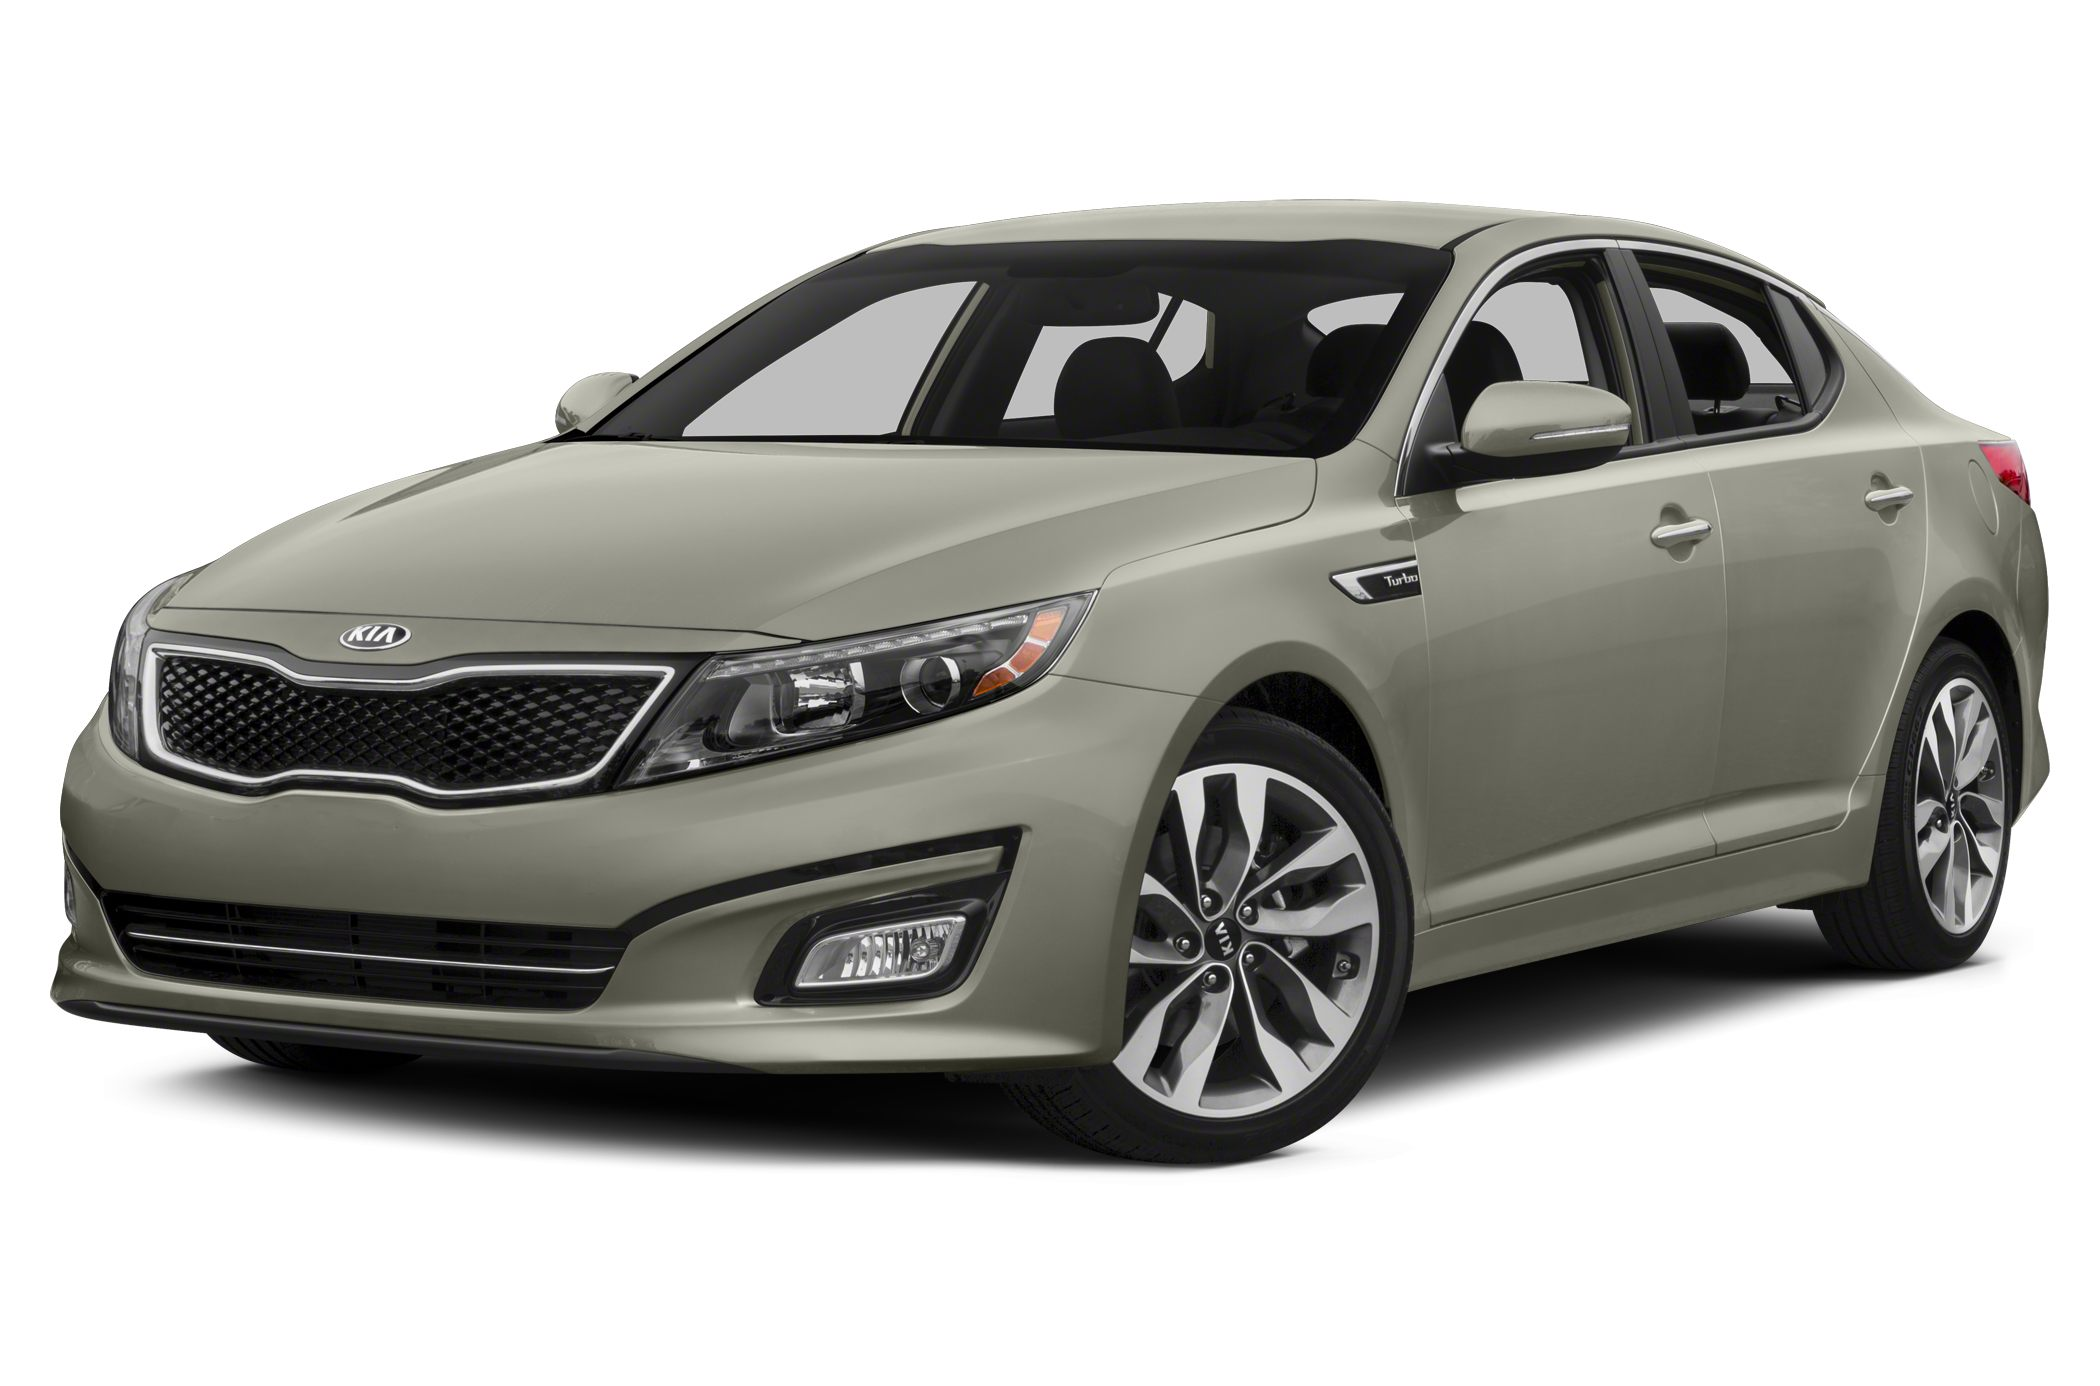 2015 Kia Optima SX New Arrival CarFax One Owner This Kia Optima is CERTIFIED Bluetooth Multi-Z